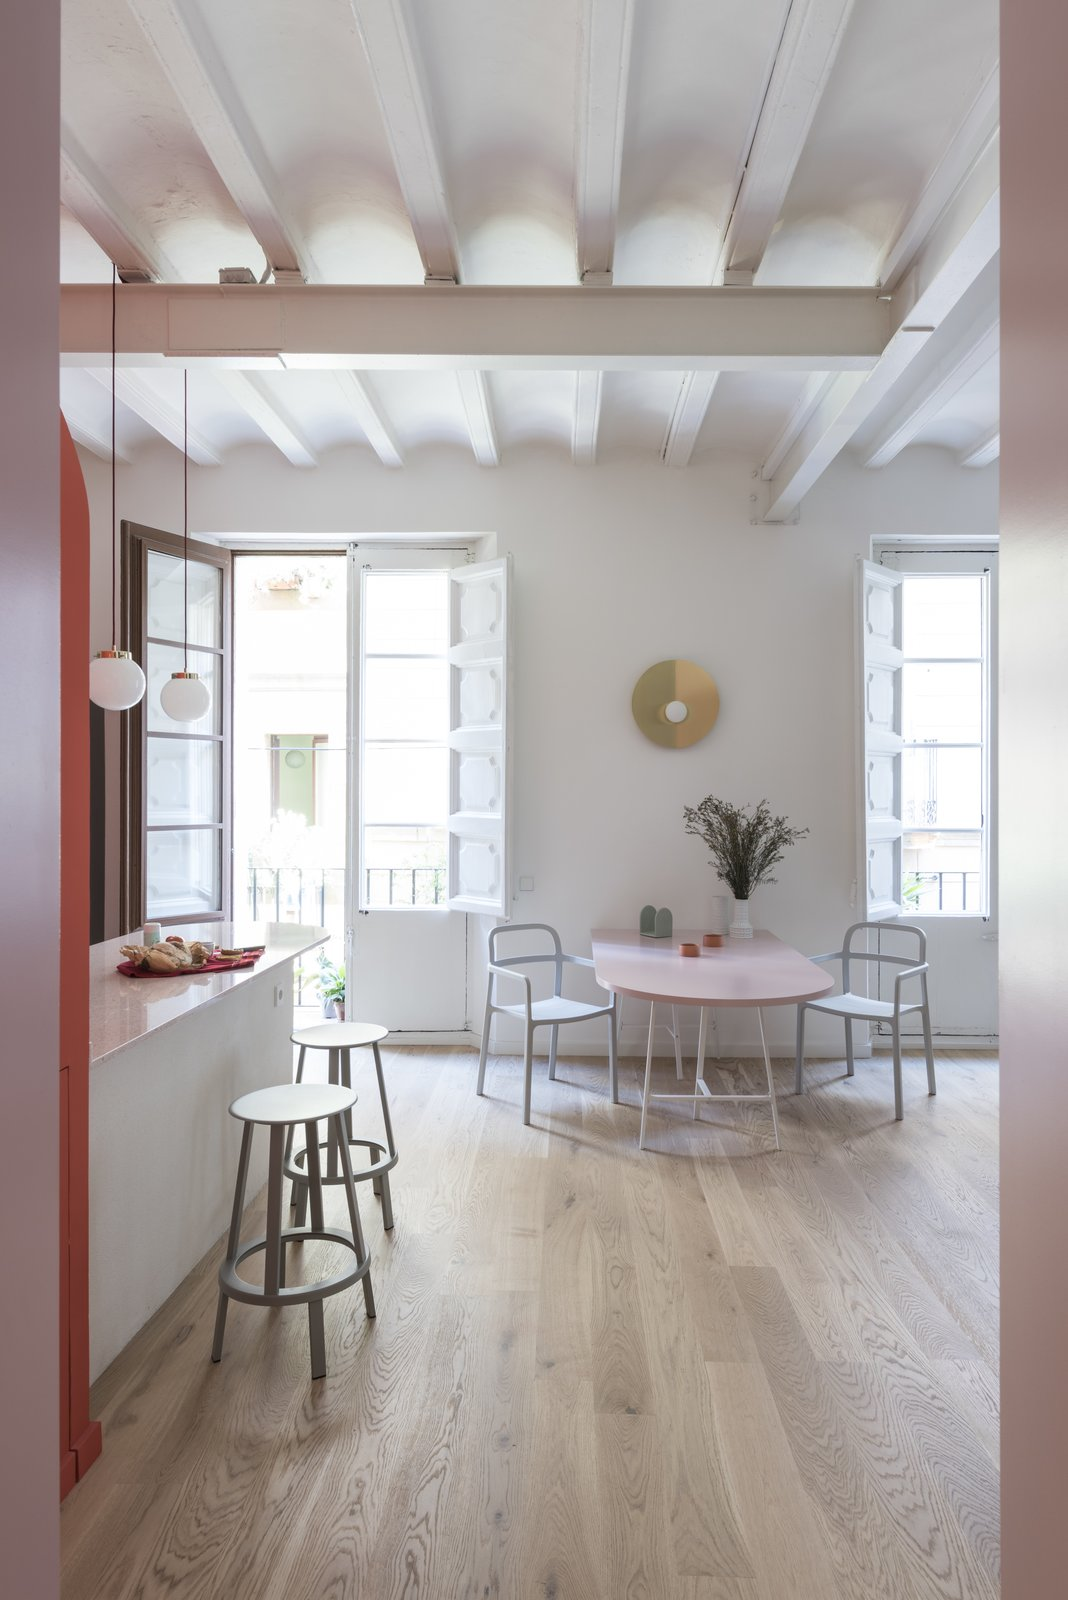 Dining Room, Stools, Pendant Lighting, Wall Lighting, Chair, Table, and Light Hardwood Floor Between the two big windows, the golden  Best Photos from Before & After: An Ancient Barcelona Apartment Gets a Colorful, Chic Makeover